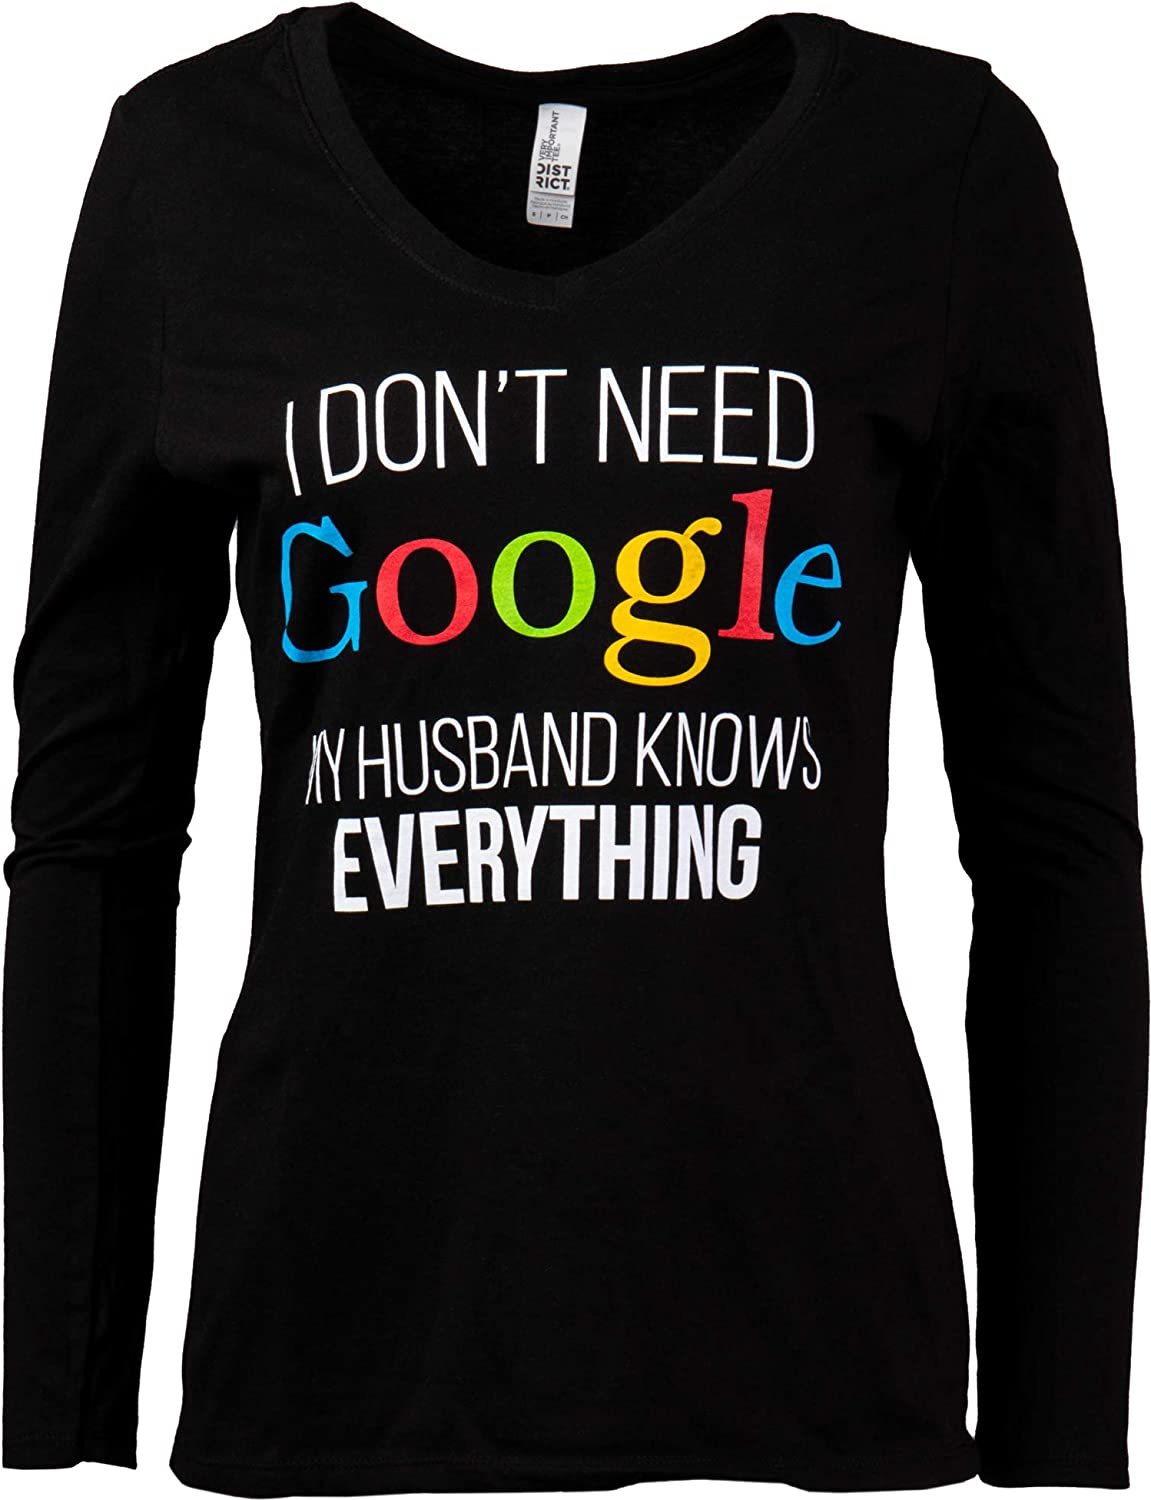 I Don't Need Google, My Husband Knows Everything | Wife Women's V-Neck Graphic T-Shirt